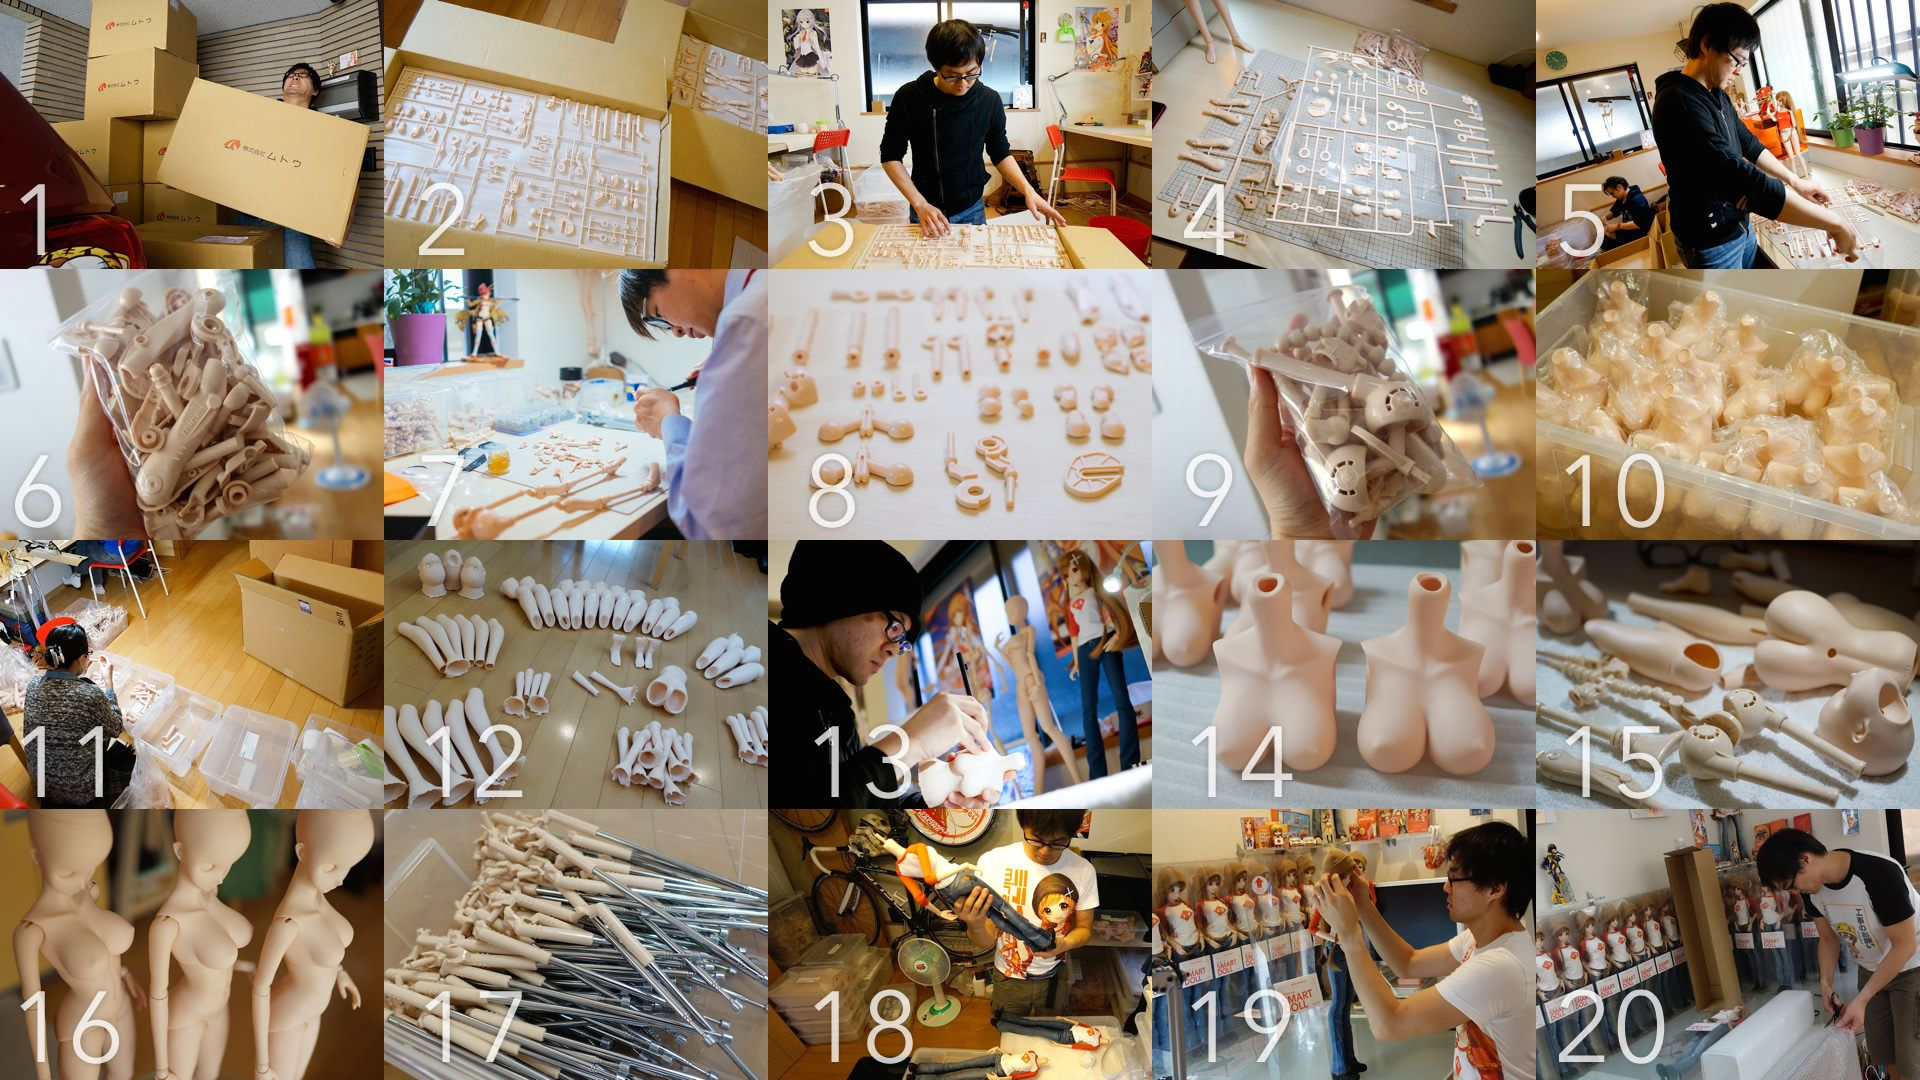 The Making of Smart Doll (With images) Smart doll, White